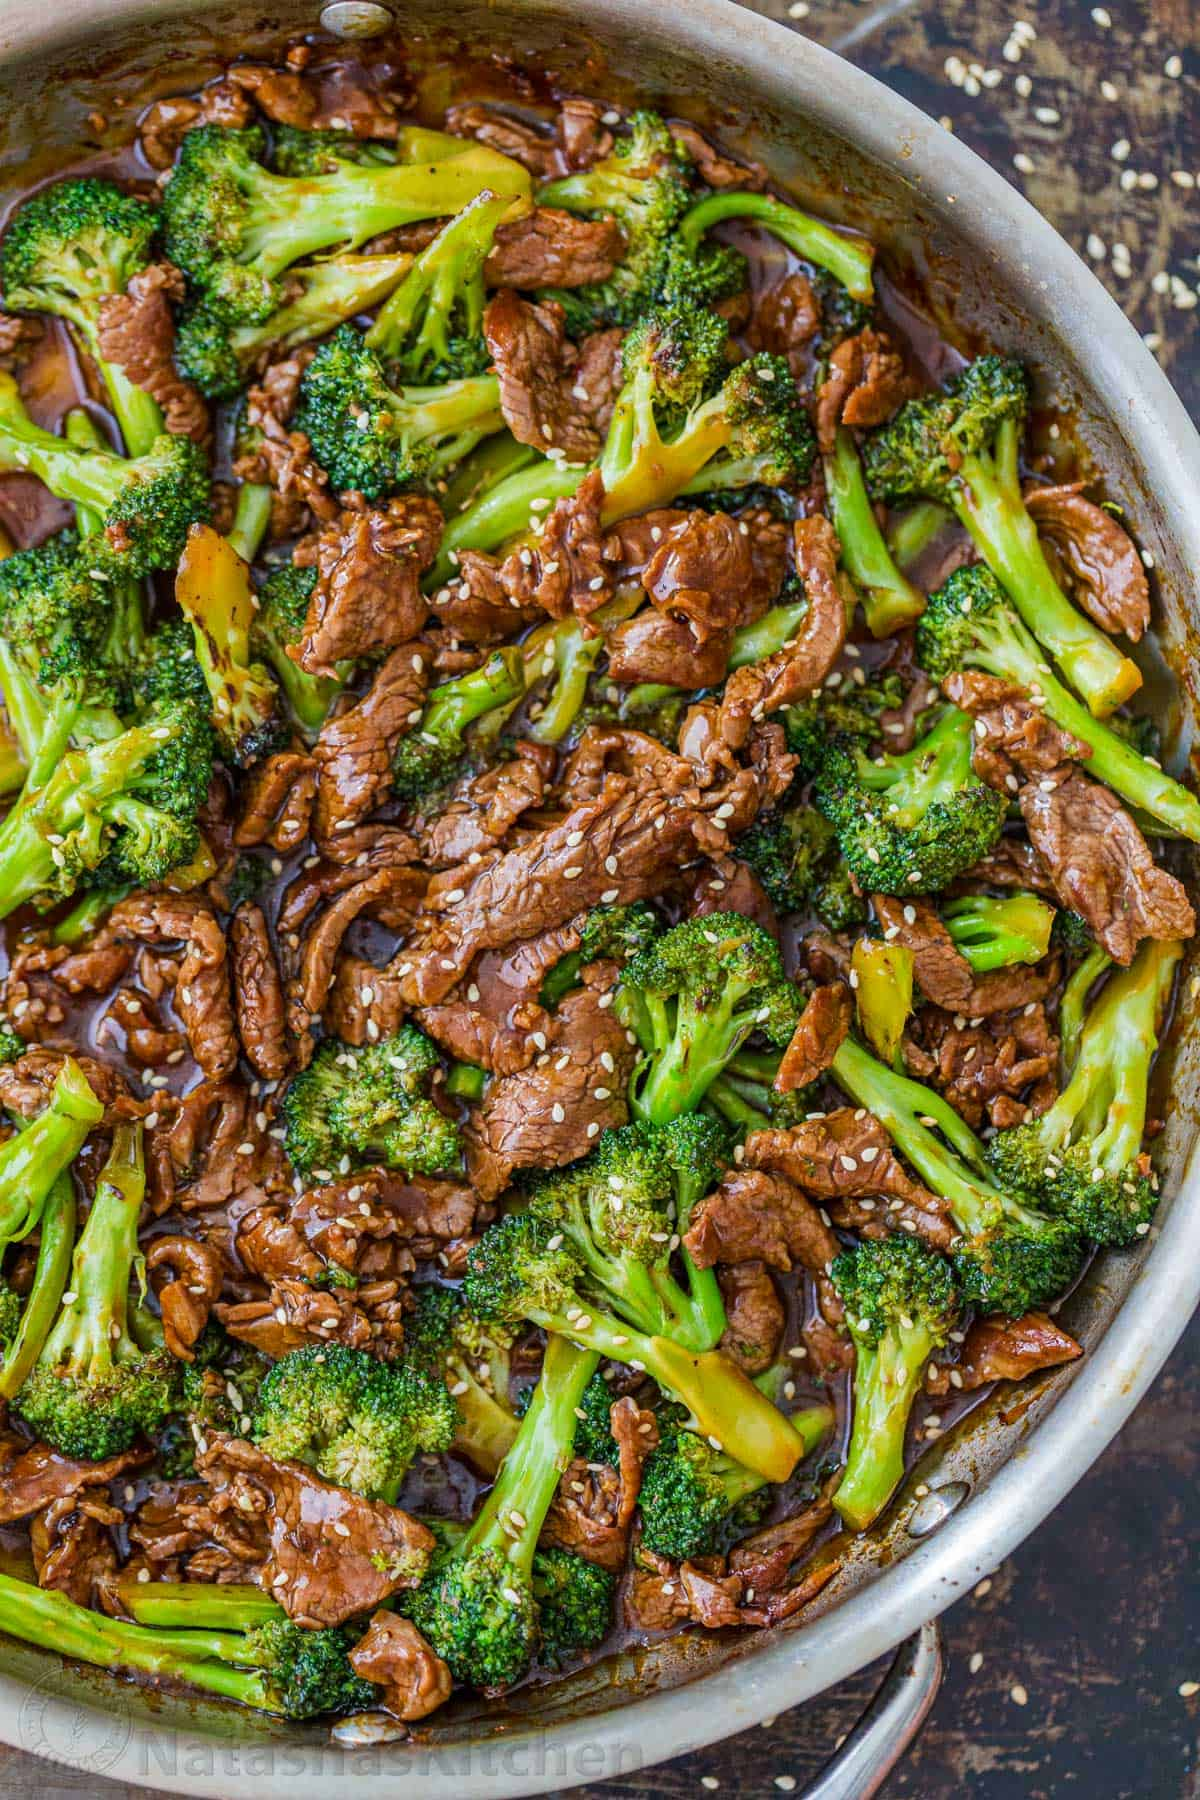 Beef And Broccoli With The Best Sauce Video Natashaskitchen Com